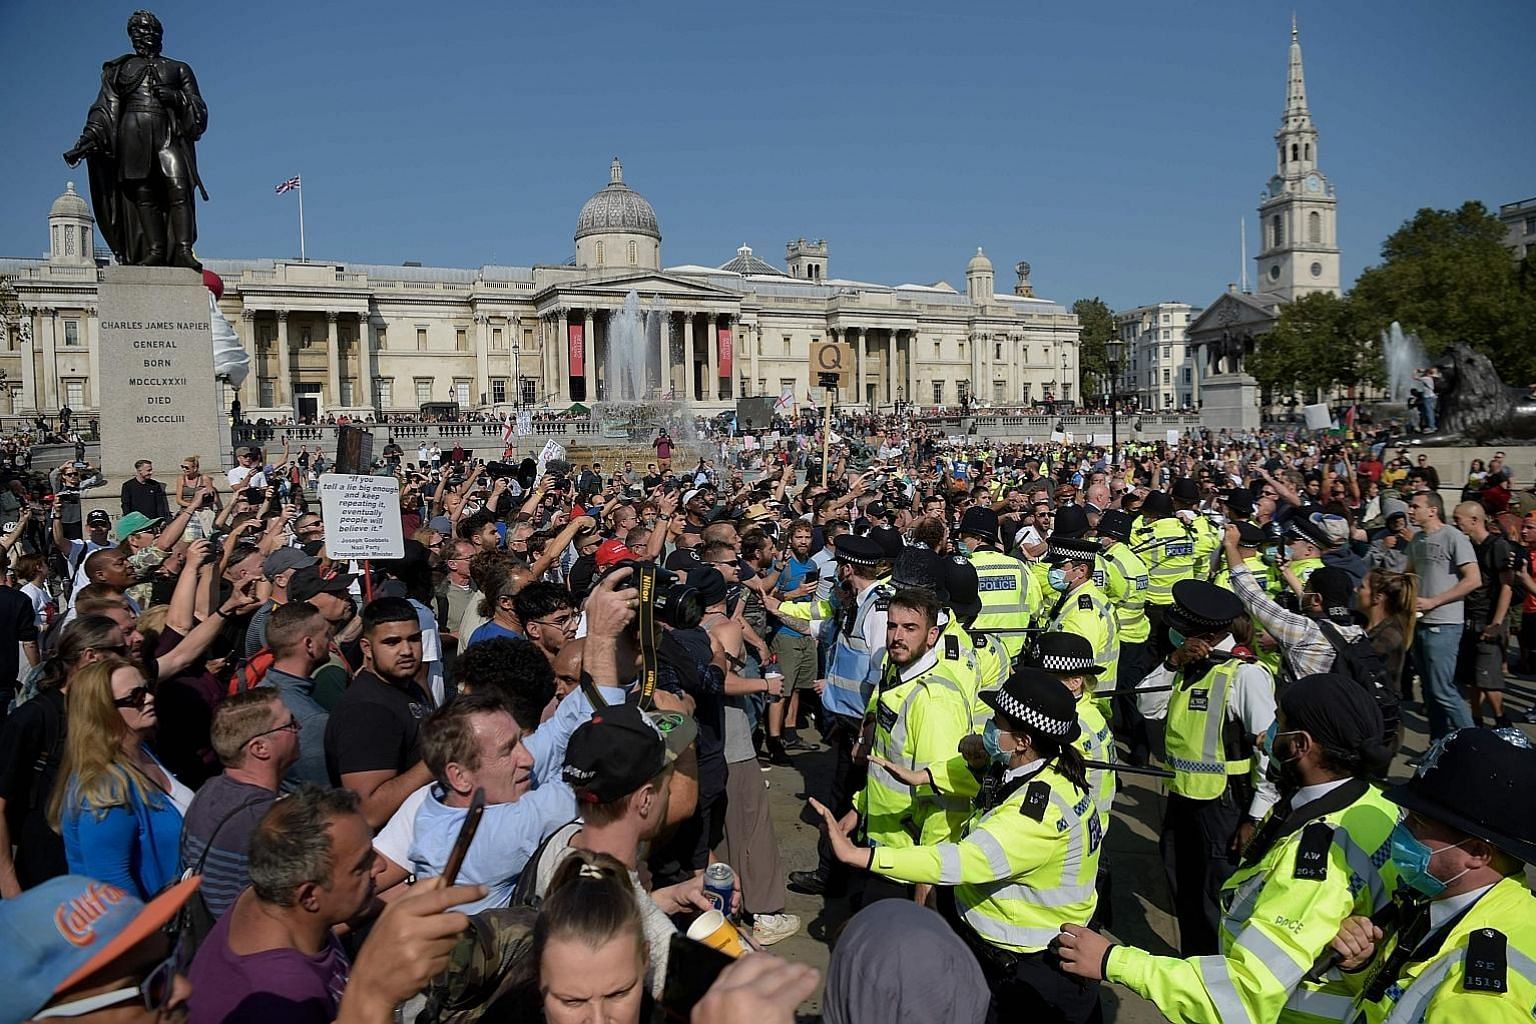 Police holding back protesters at an anti-vax rally in central London yesterday. The UK's official number of new positive cases shot up by nearly 1,000 on Friday to 4,322, the highest since May 8.